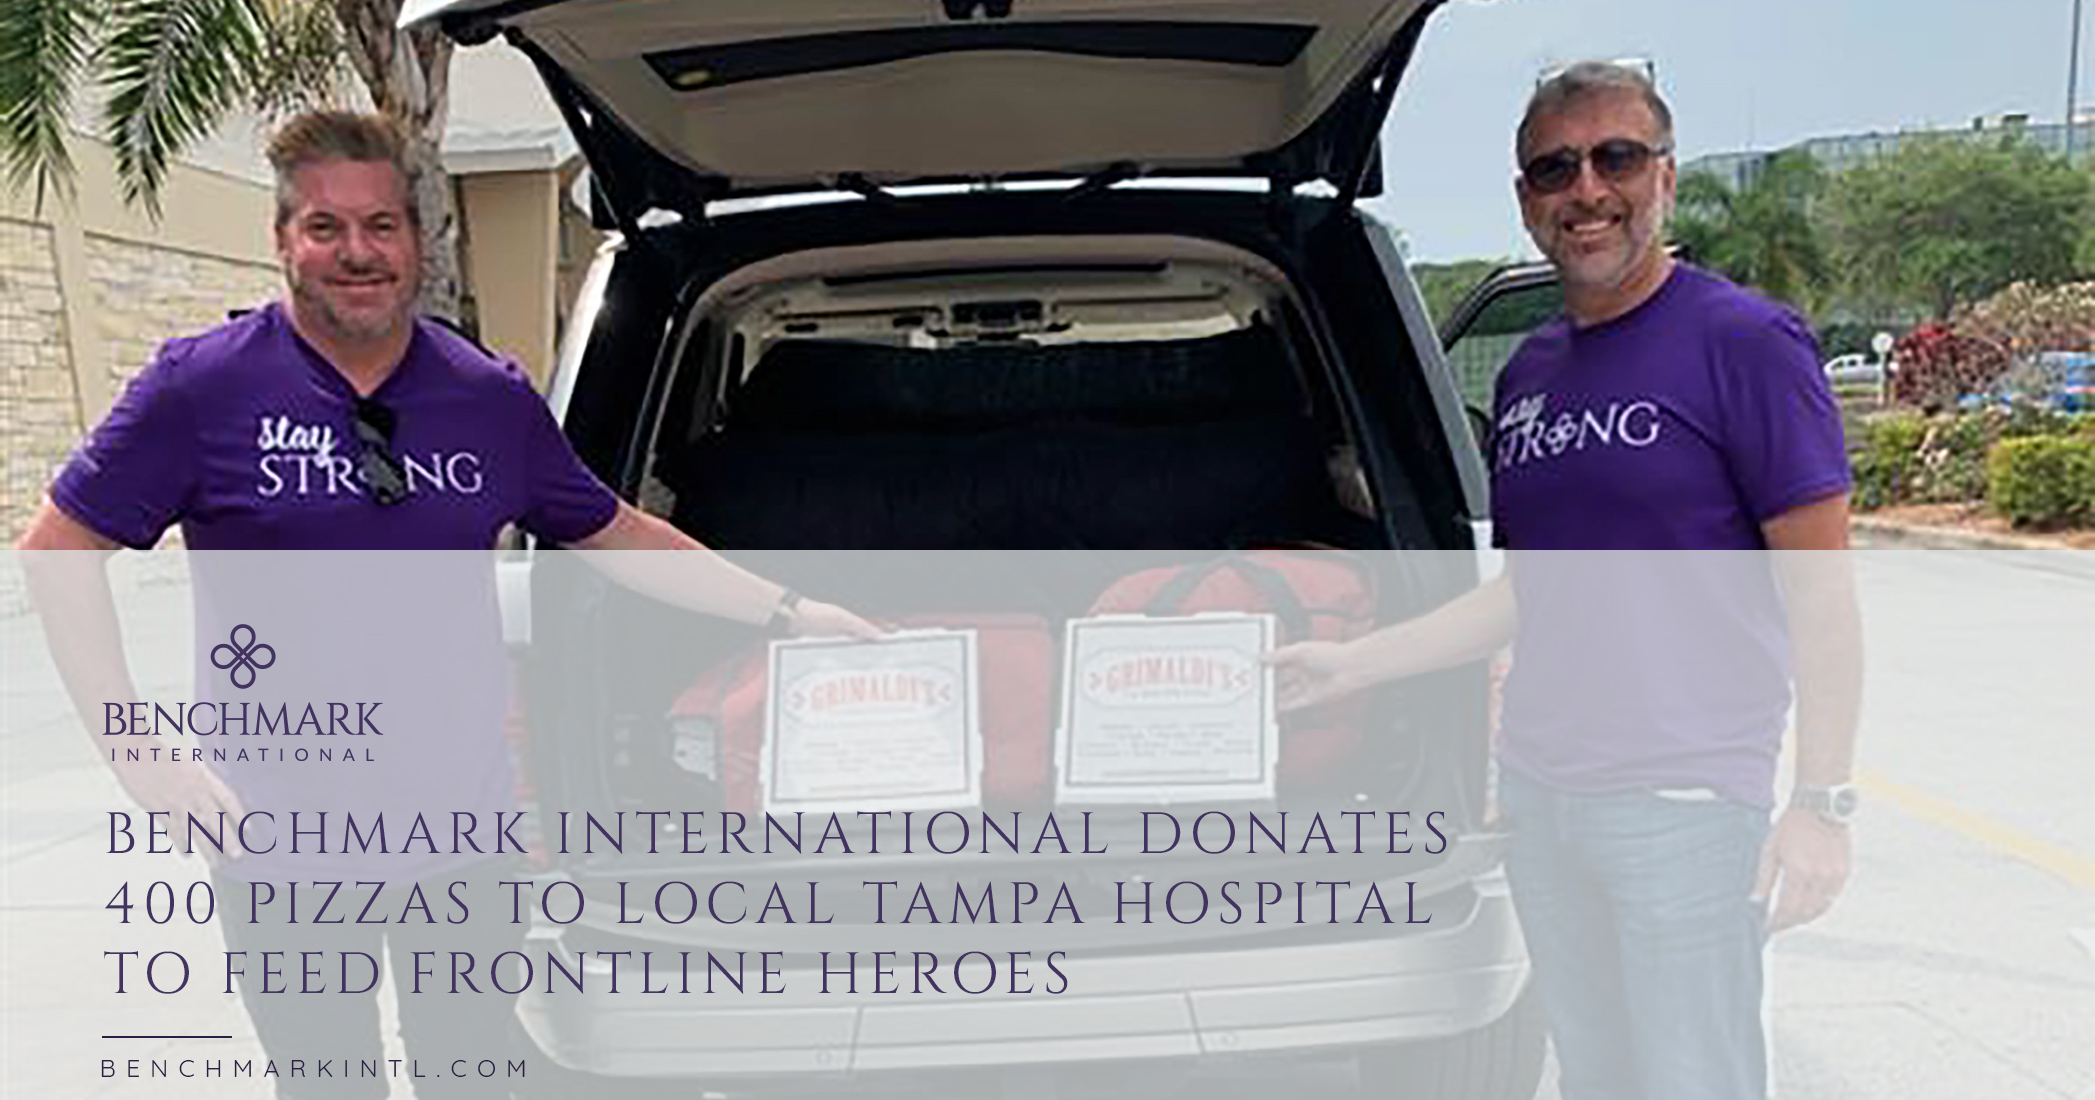 Benchmark International Donates 400 Pizzas to Local Tampa Hospital to Feed Frontline Heroes